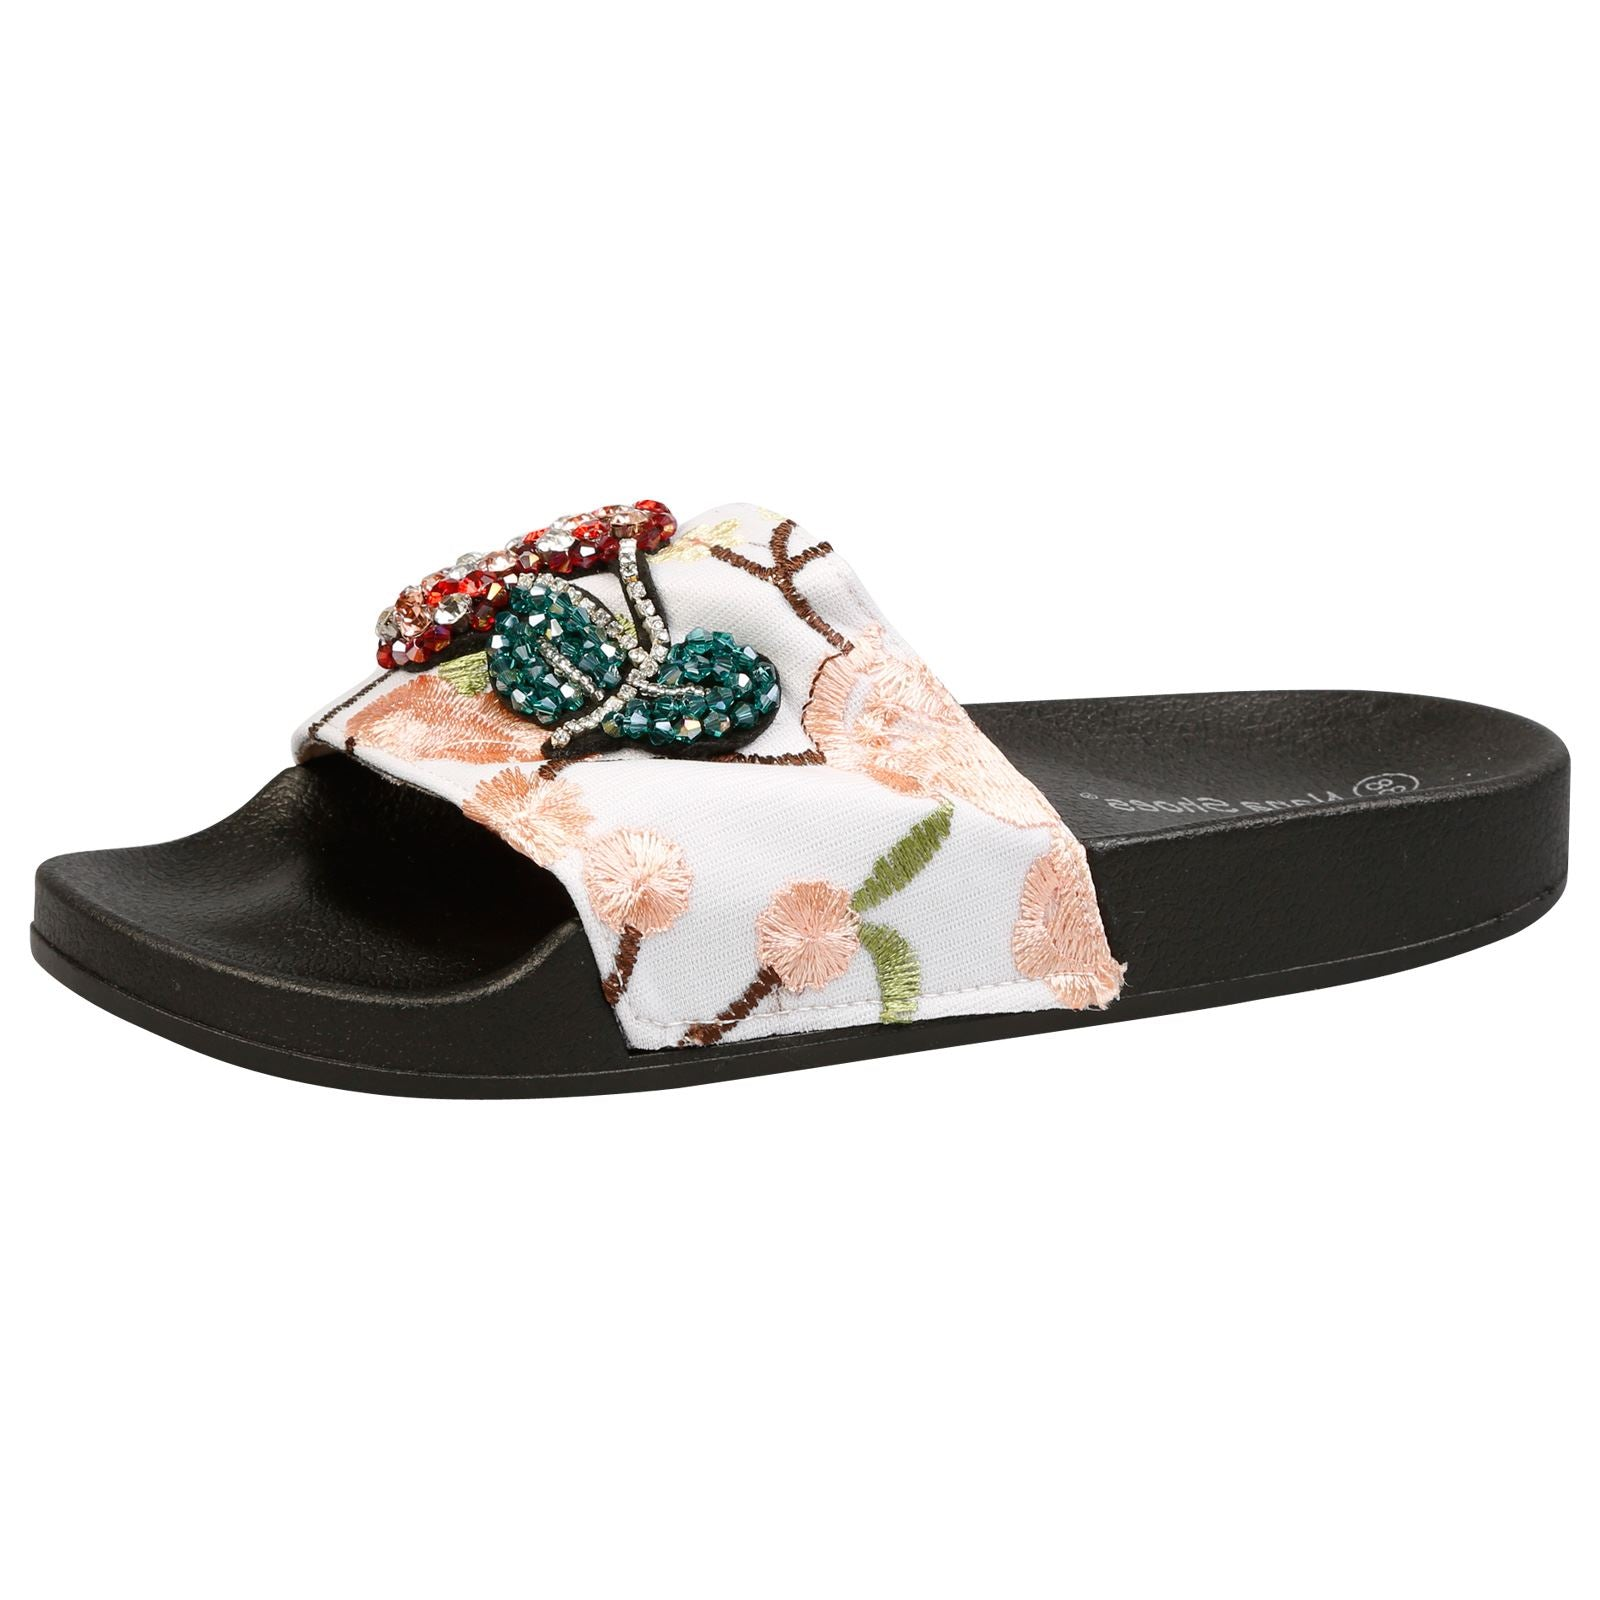 Tempest Floral Embroidered Sliders in White & Pink